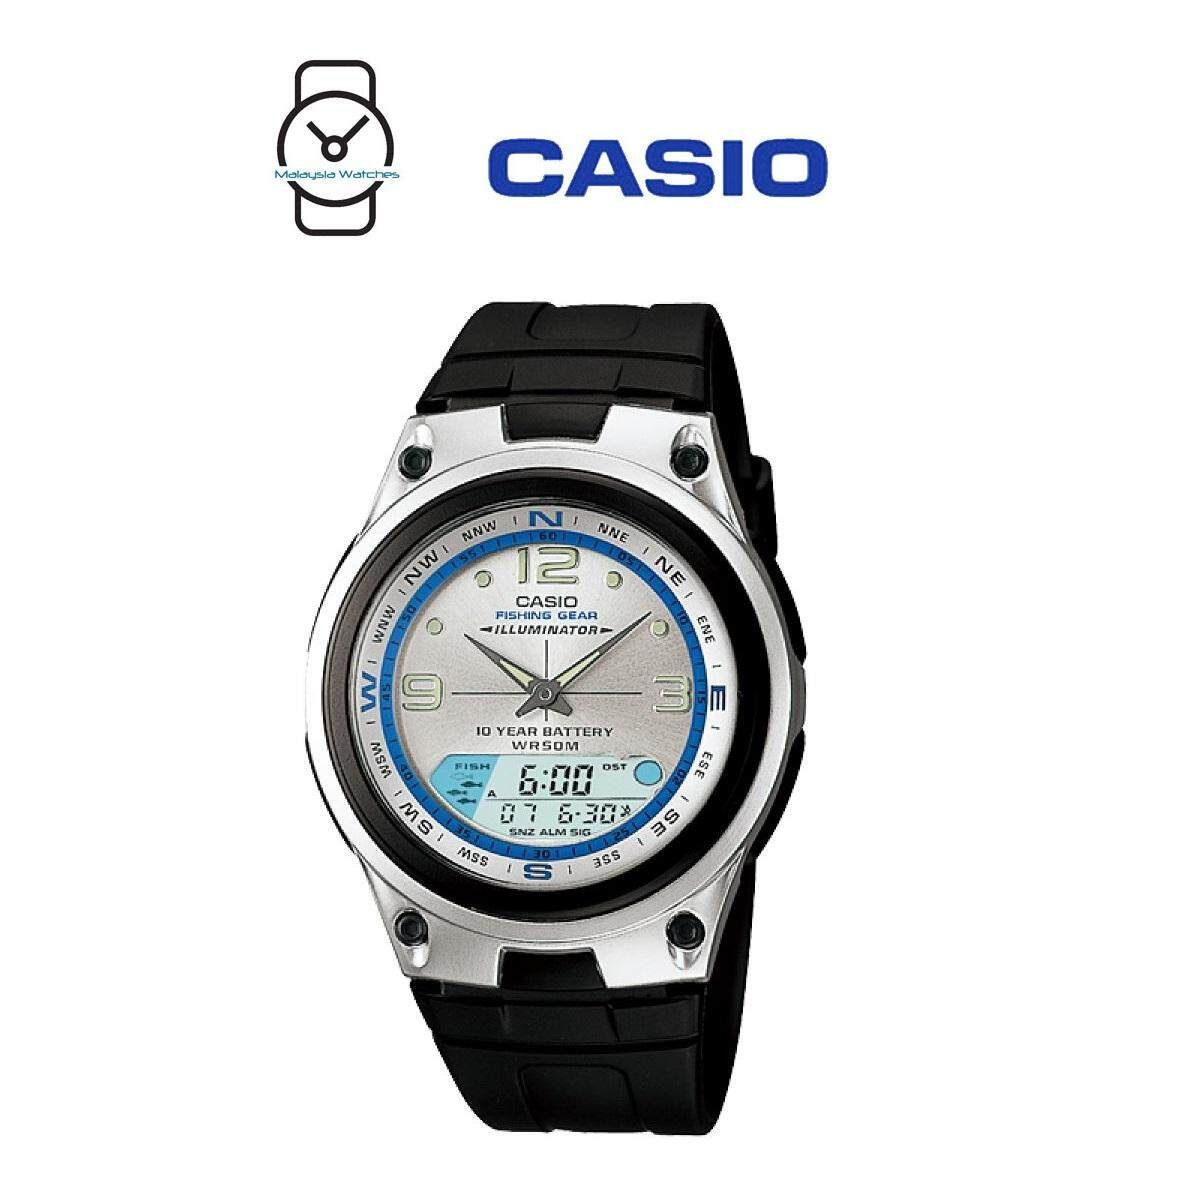 Casio Men Sports Watches Price In Malaysia Best Aeq 200w 9a Aw 82 7avdf Illumination Fishing Gear 10 Years Battery Black Silver Resin